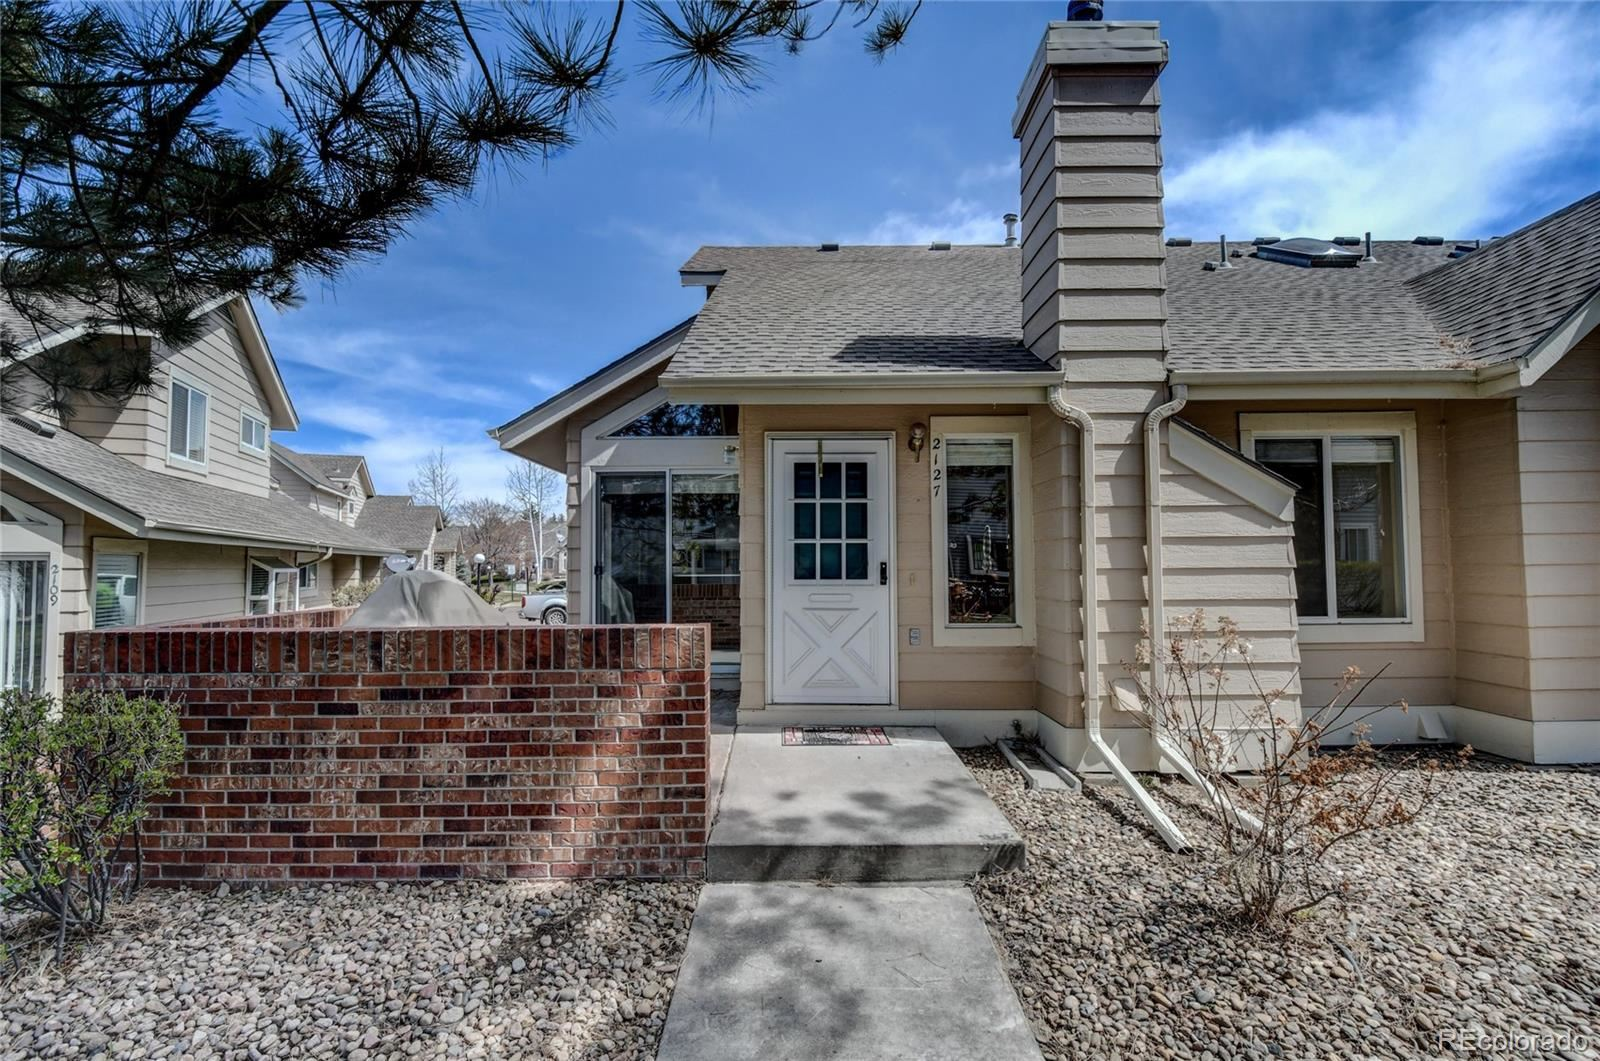 2127 S Scranton Way, Aurora, CO 80014 - #: 2868102